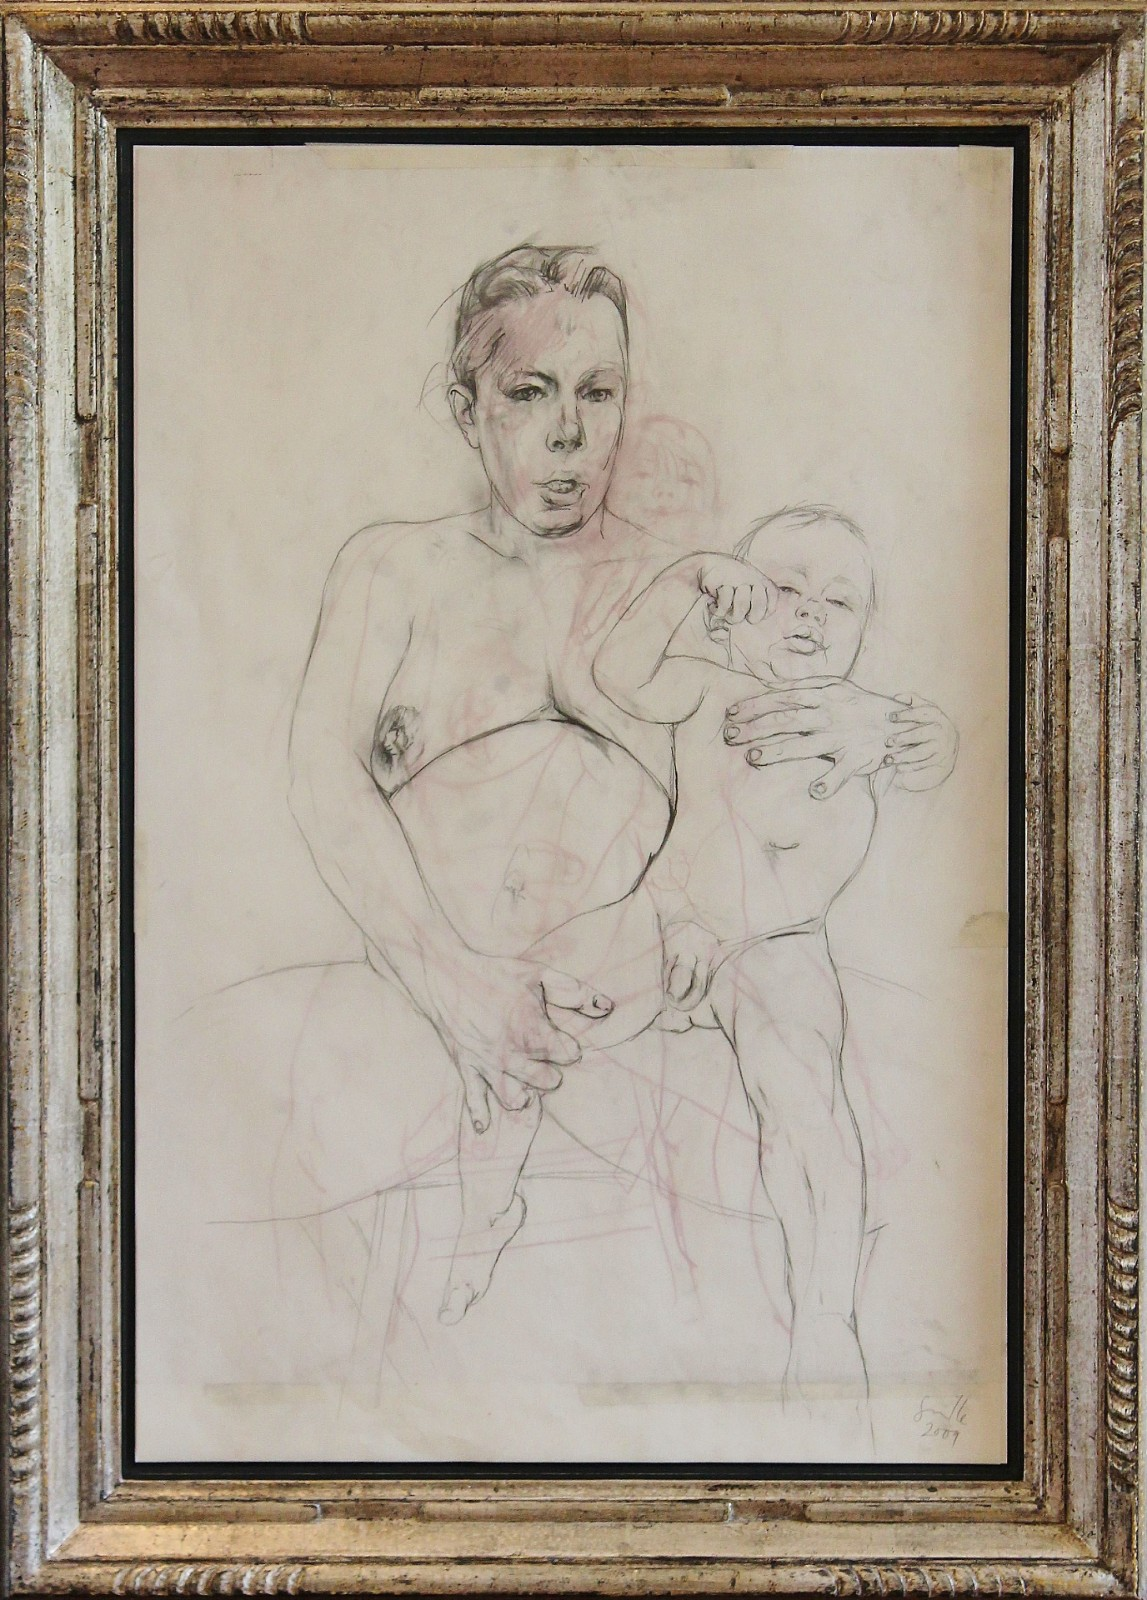 Jenny Saville (RA), Mother and Child study ii, 2009. Courtesy of Castlegate House Gallery.